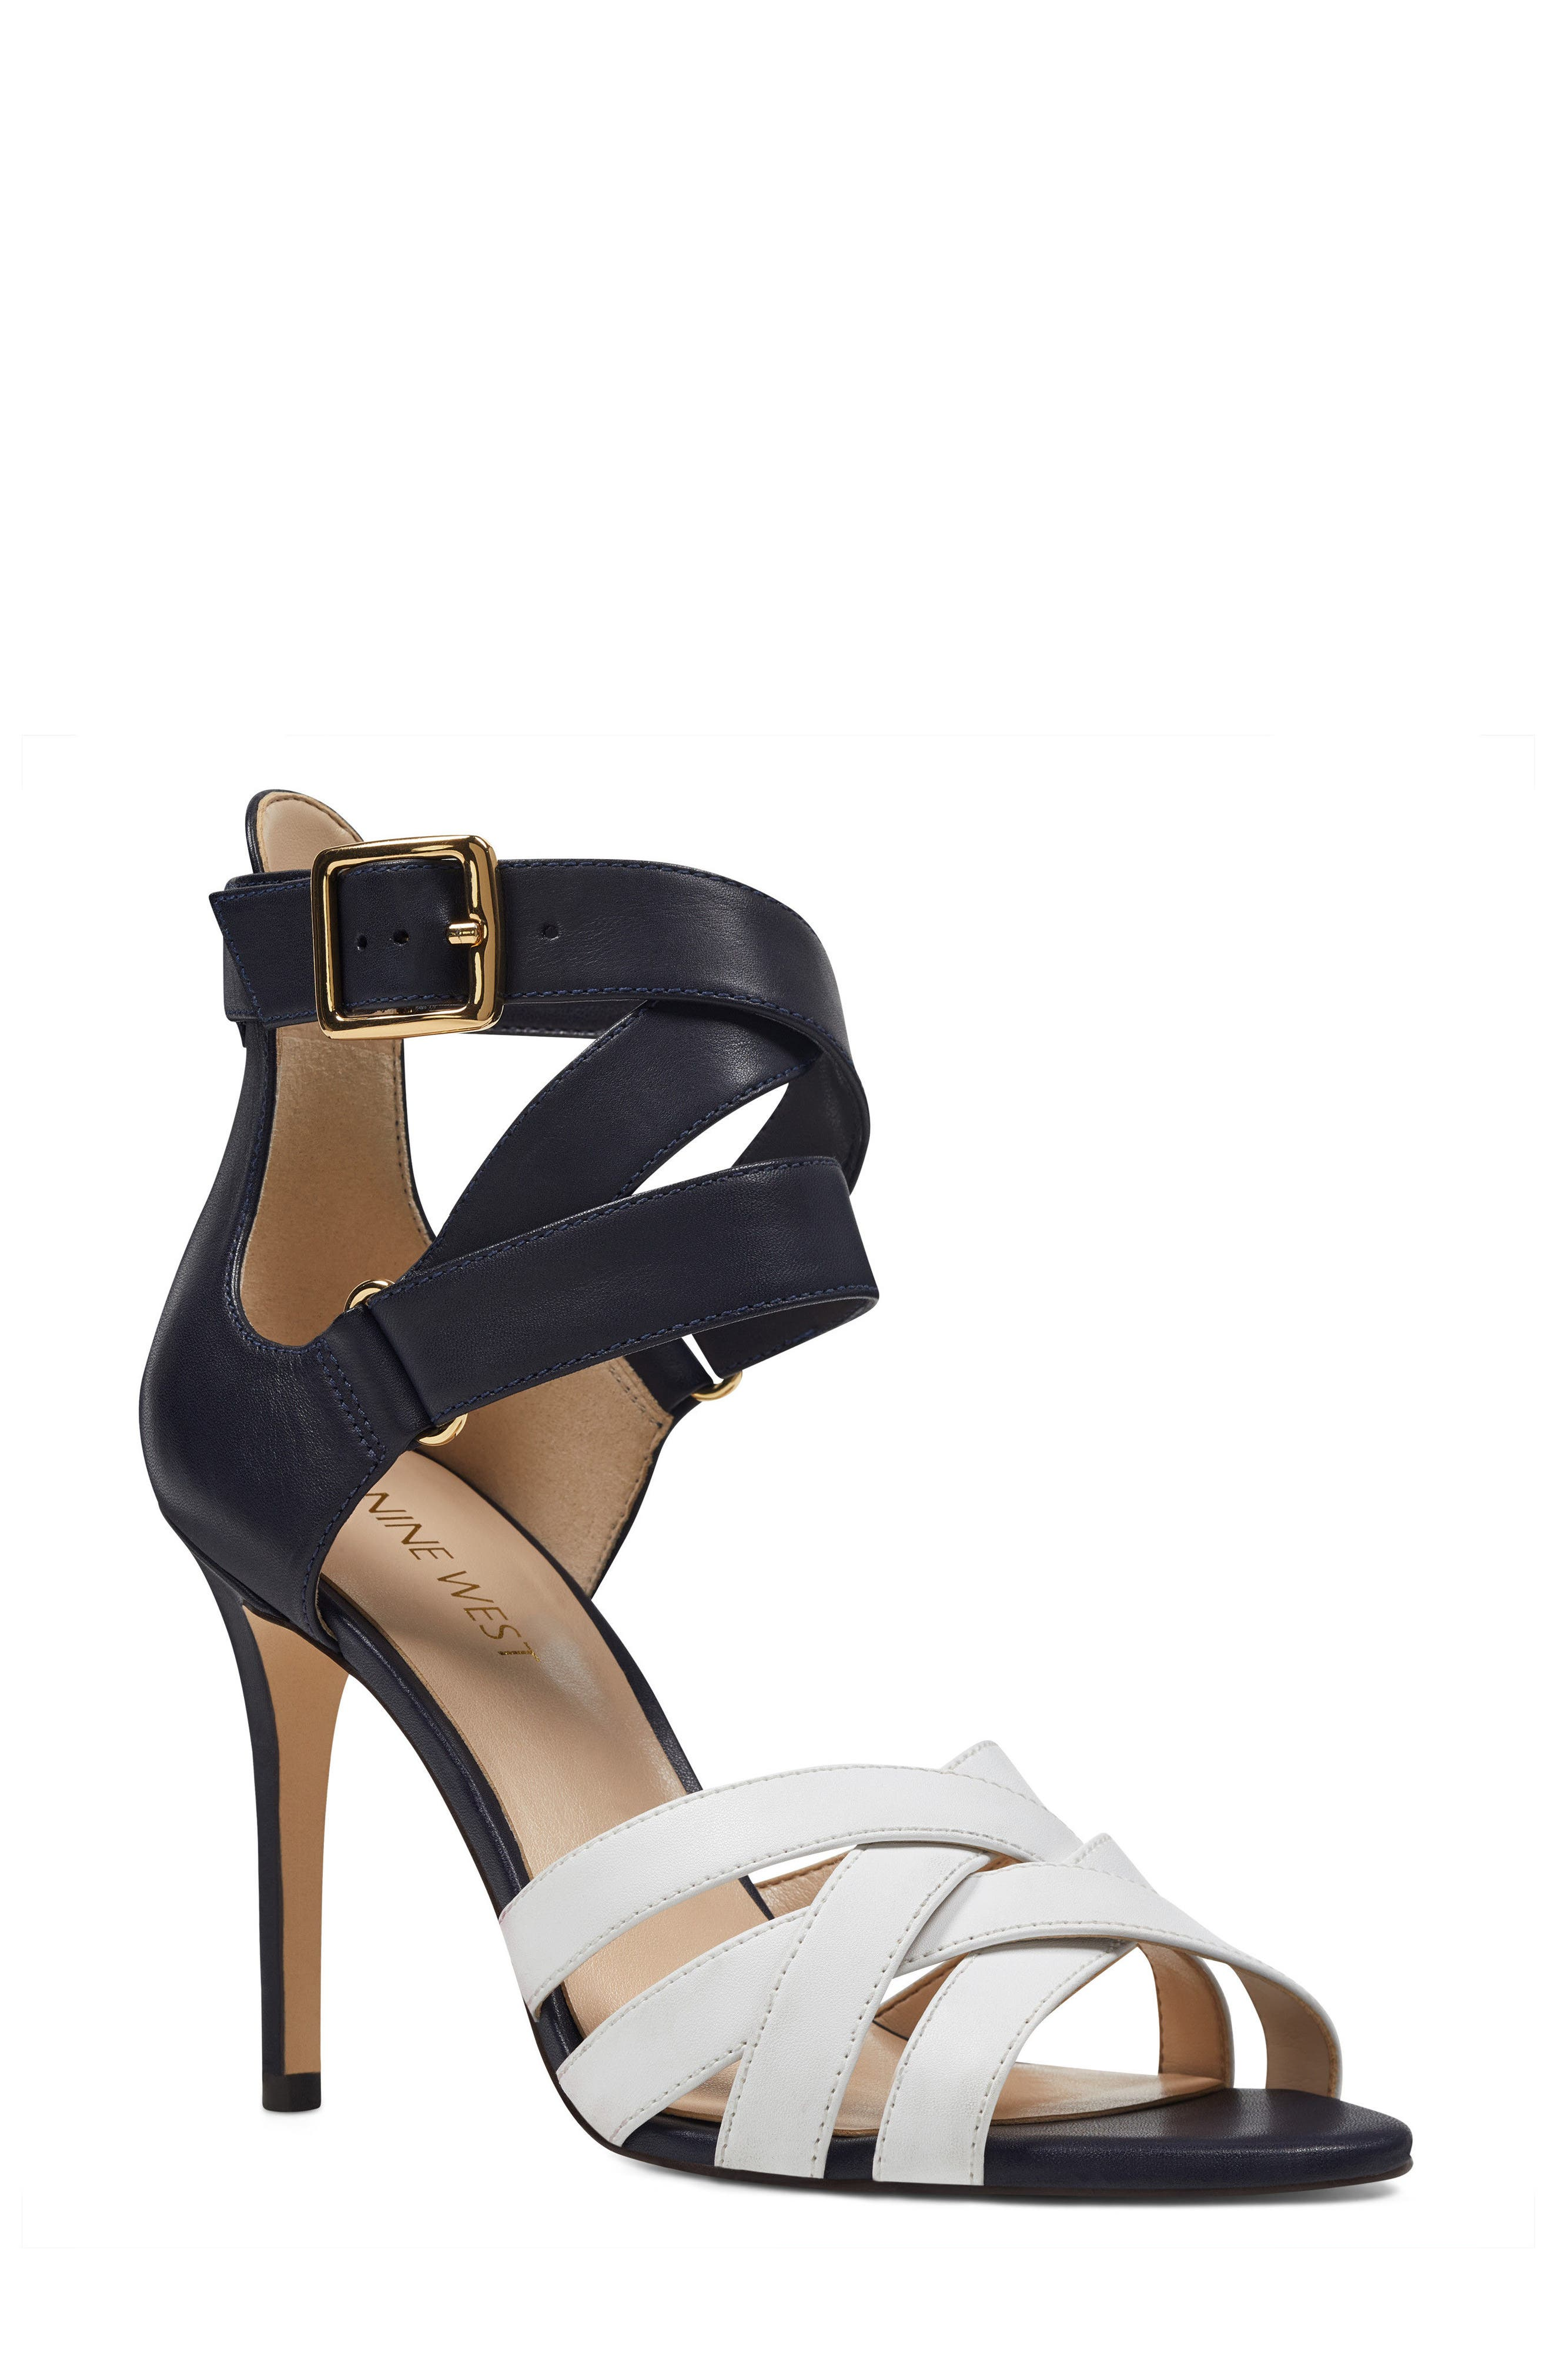 McGlynn Strappy Sandal,                             Main thumbnail 1, color,                             Navy/ White Leather